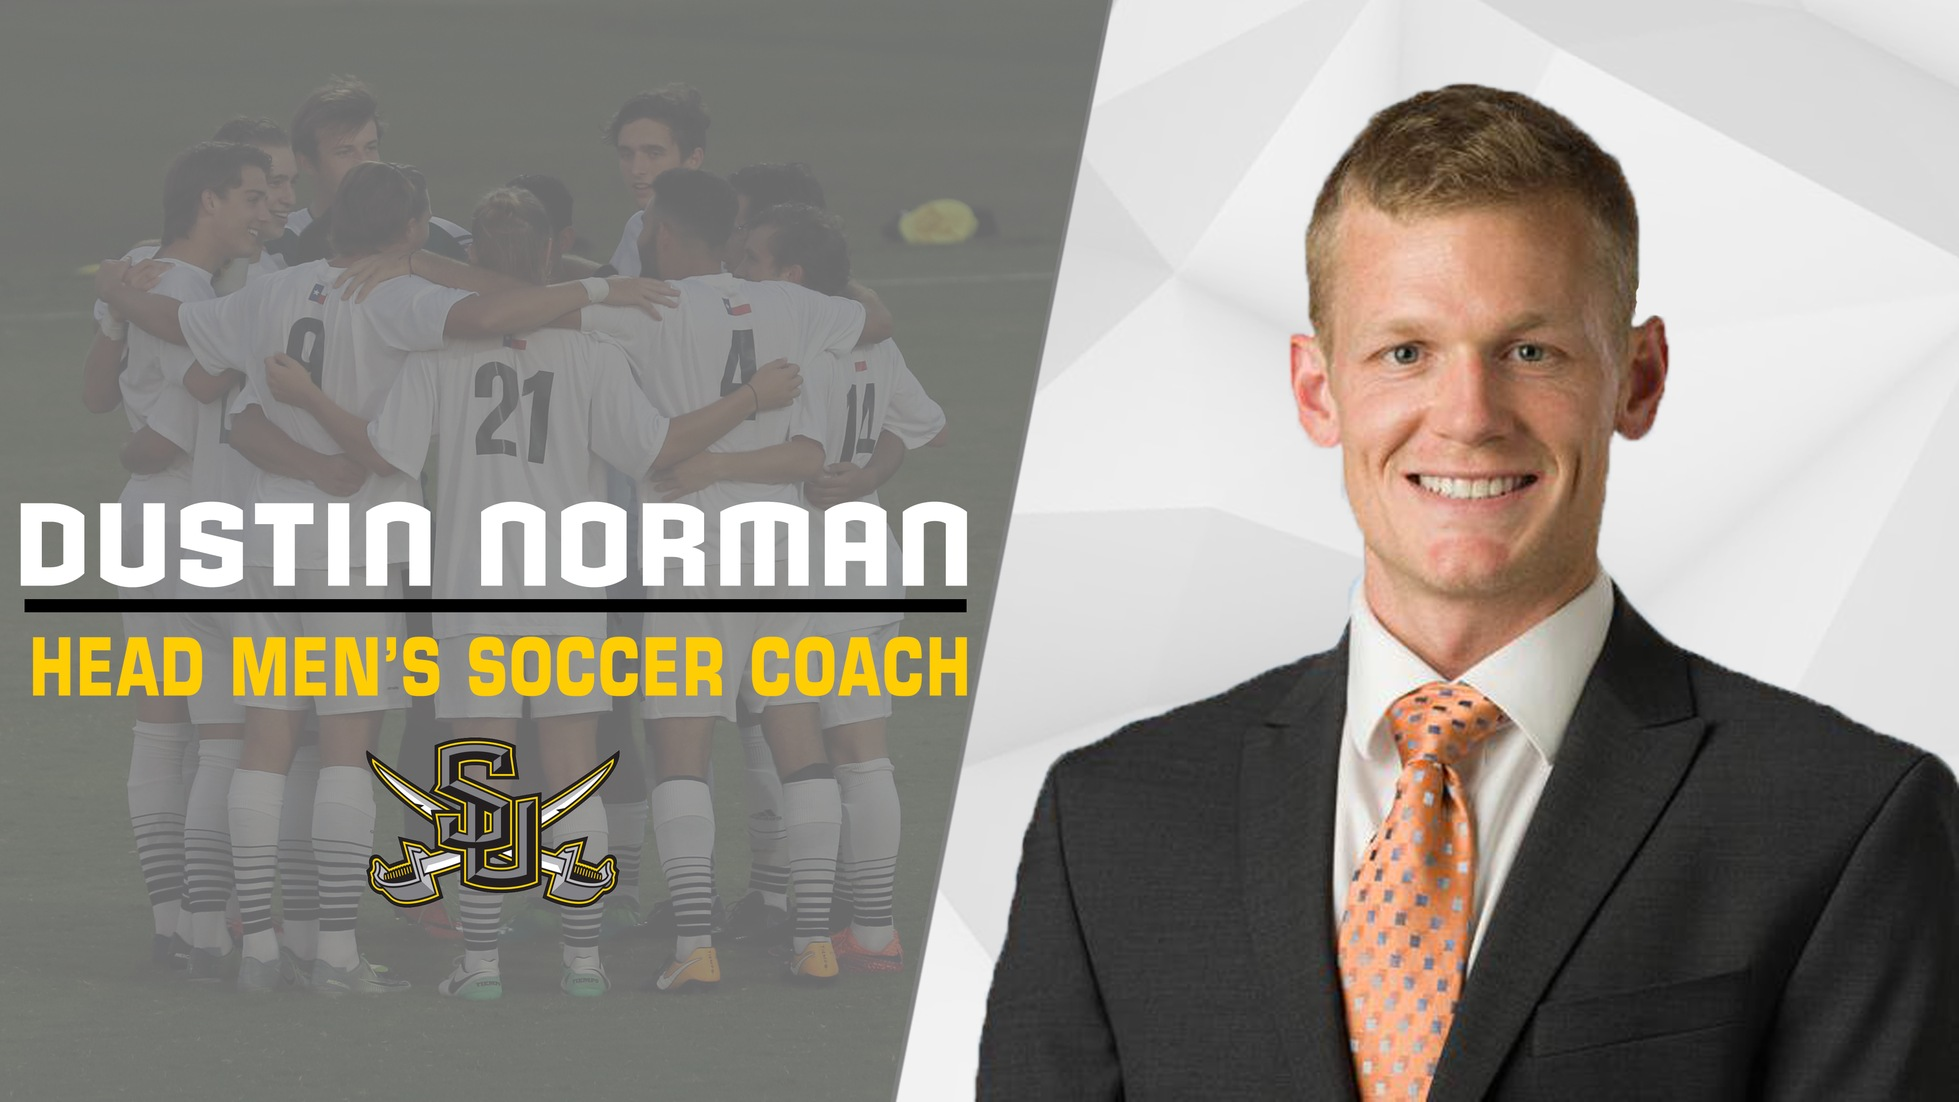 Norman Announced as Head Men's Soccer Coach